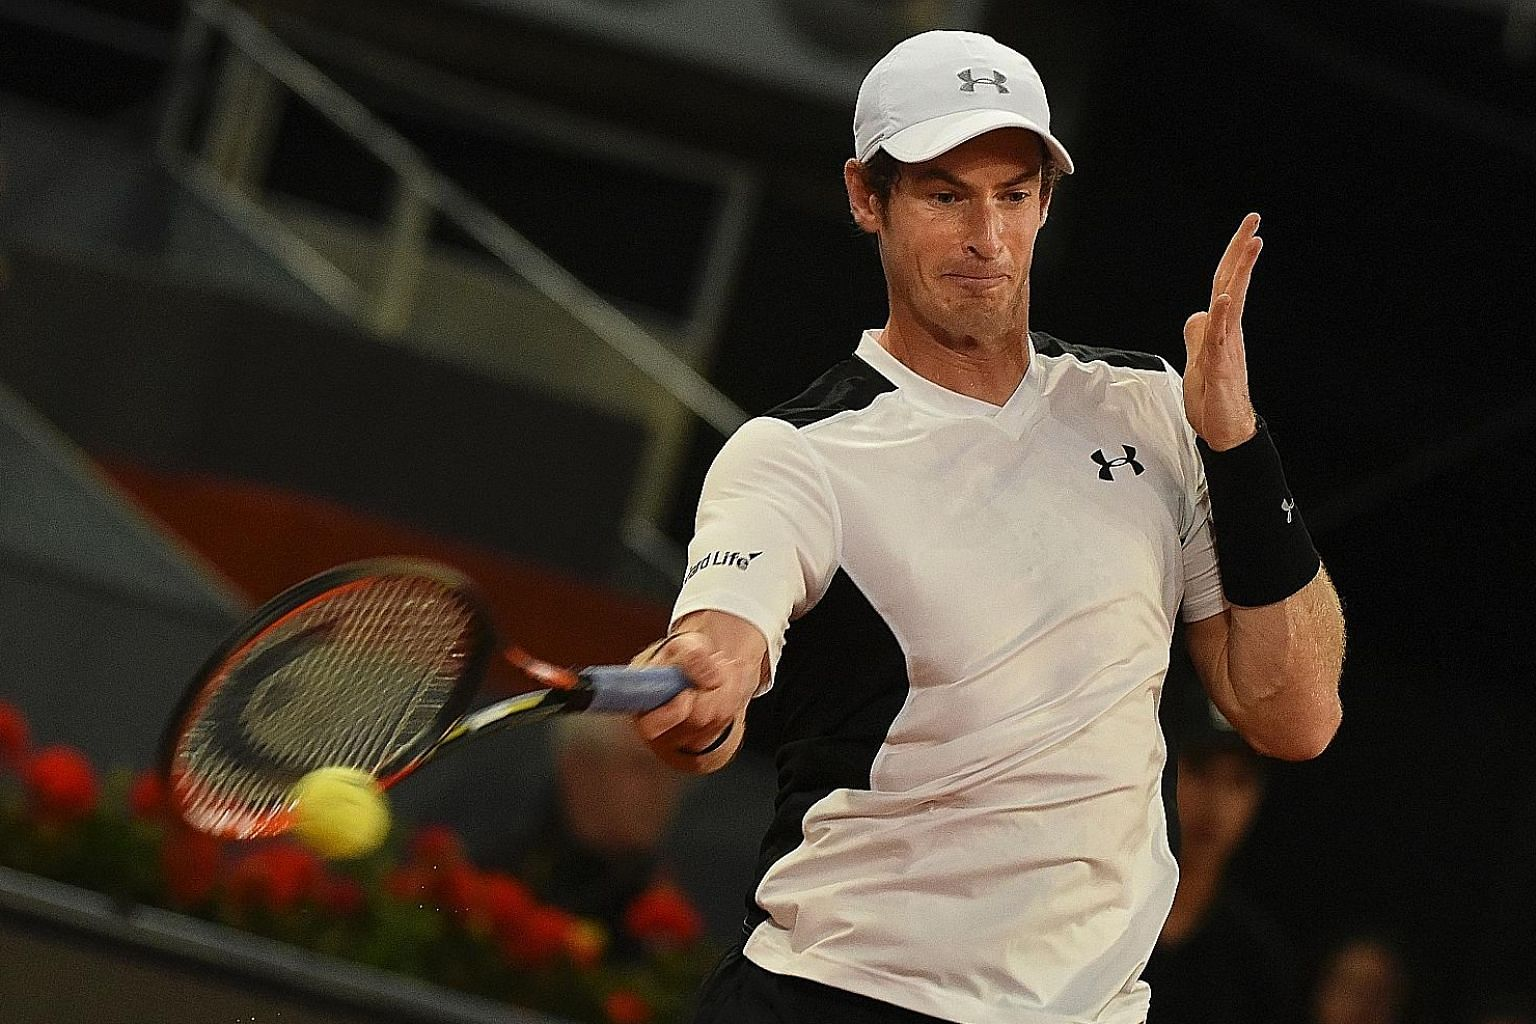 World No. 2 Andy Murray hits a forehand during his Madrid Open quarter-final win against Tomas Berdych yesterday. The Briton was most pleased with his second serve, which he believes has improved dramatically.